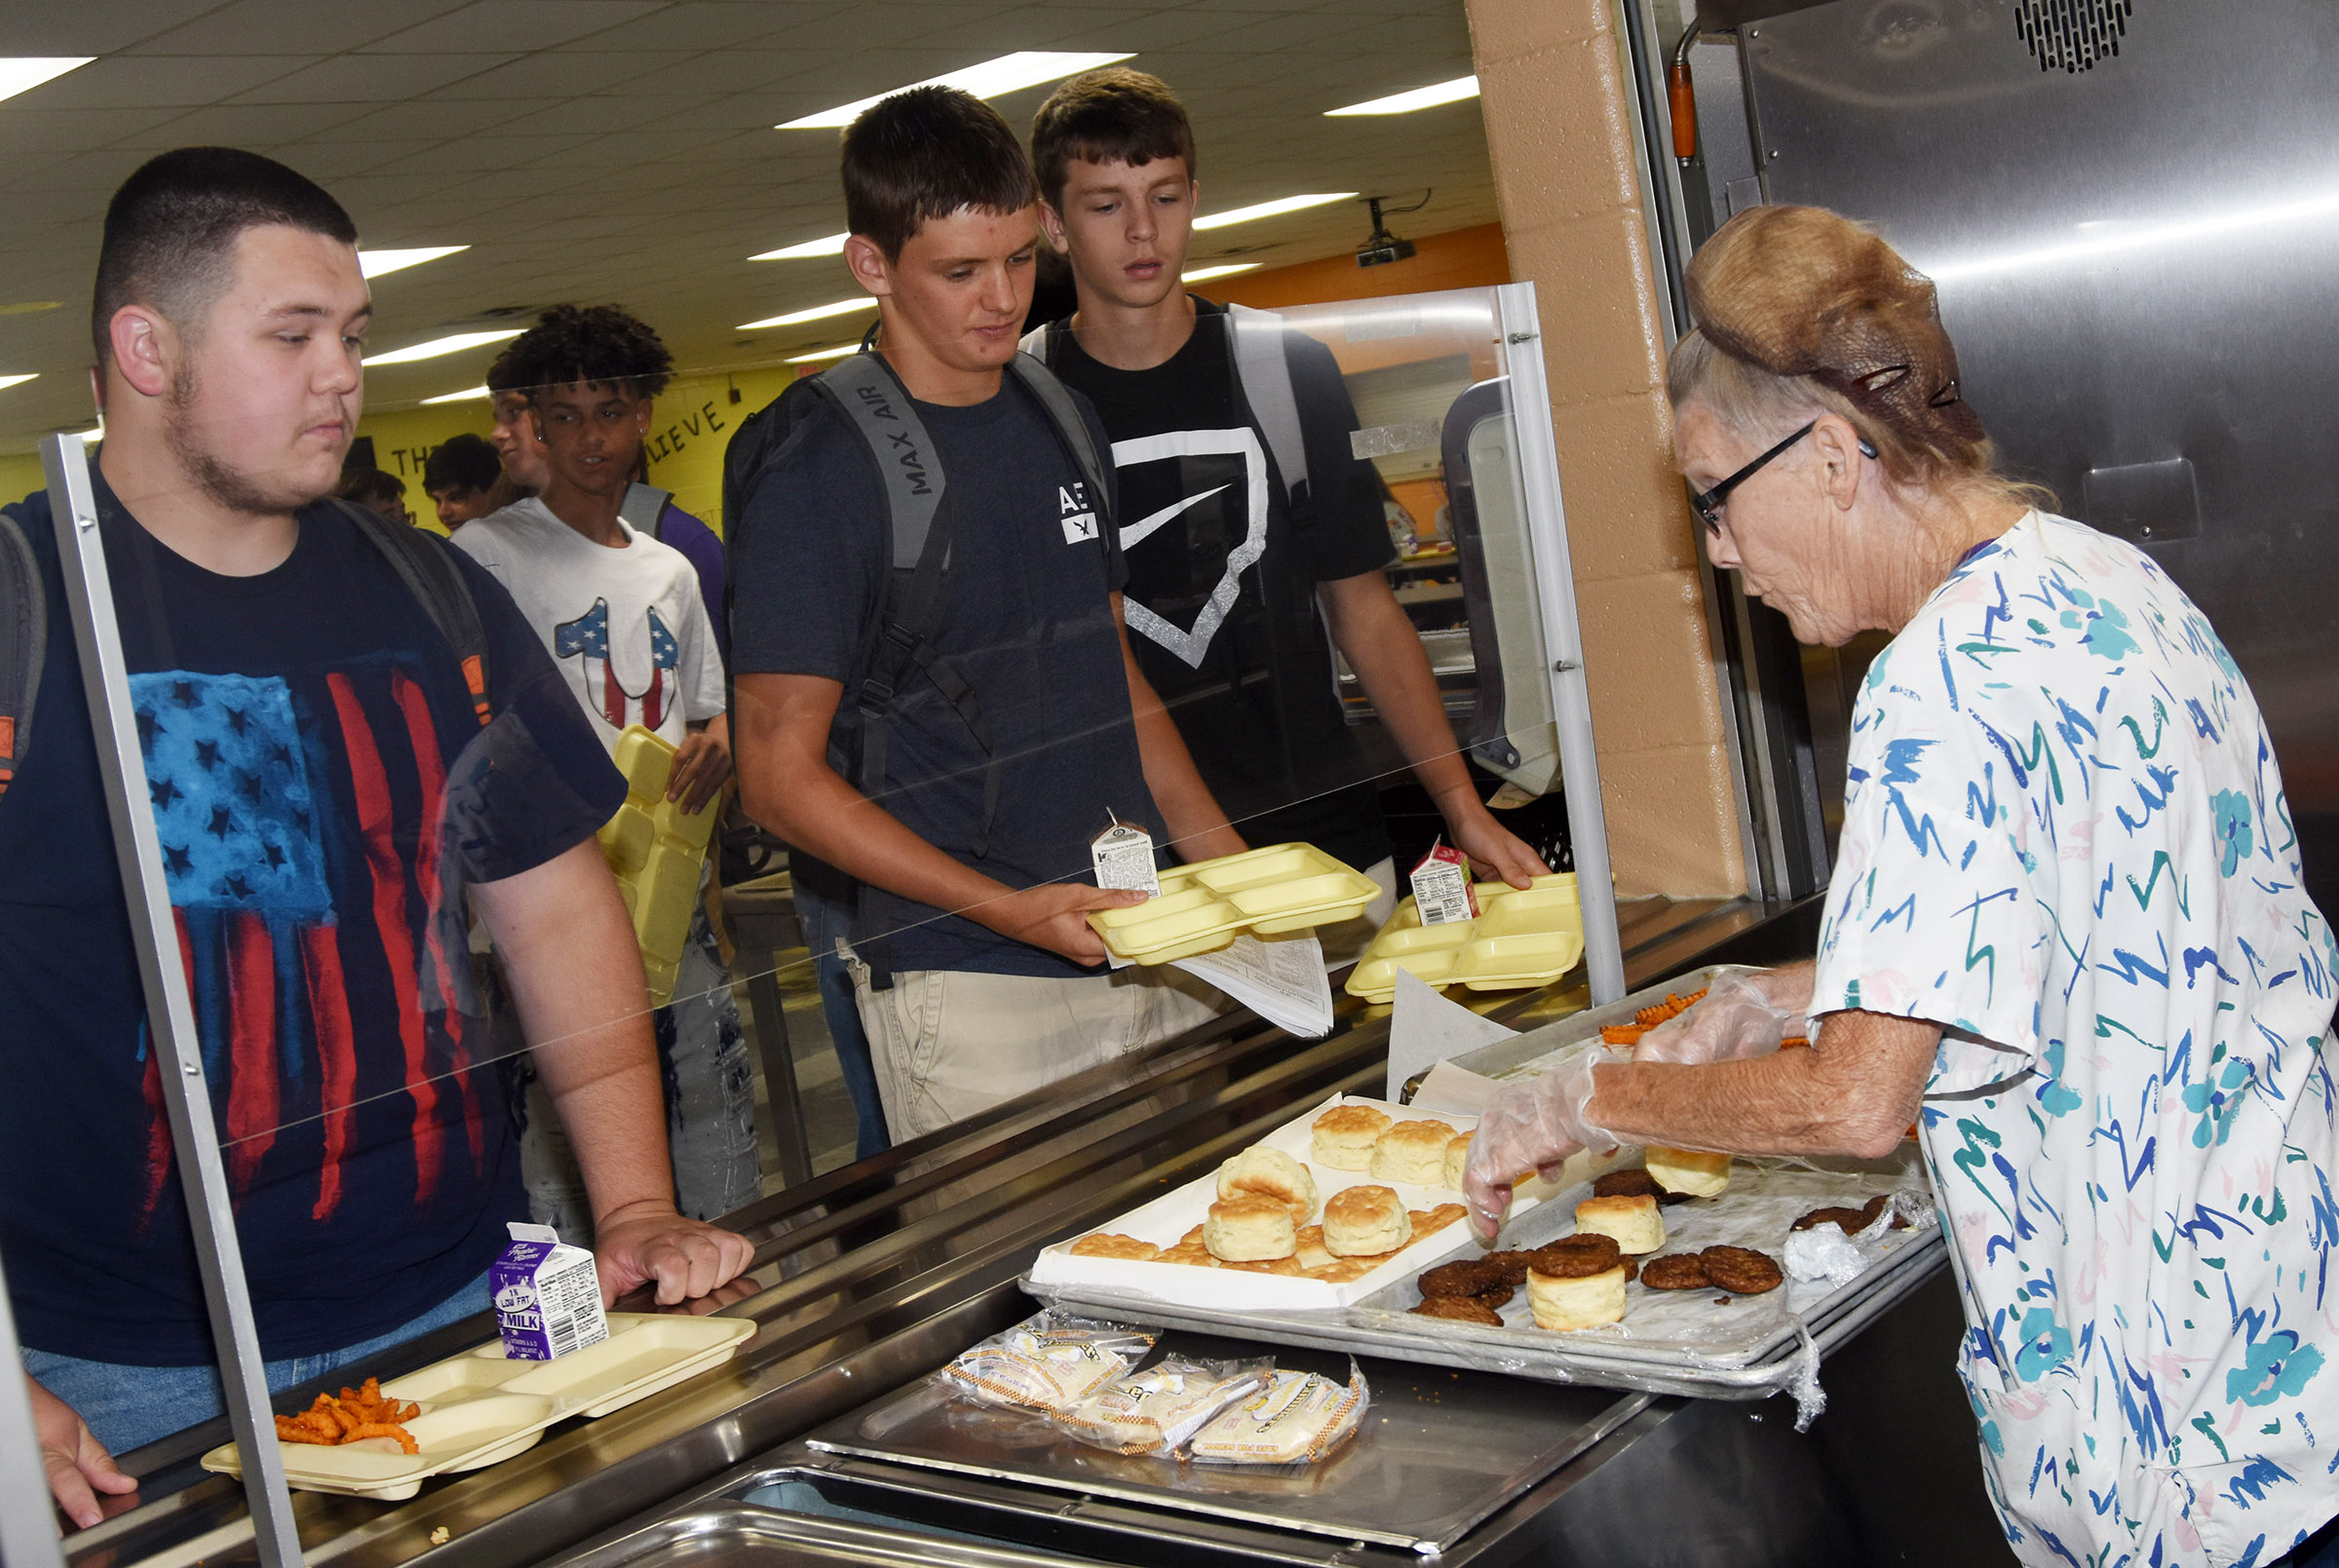 From left, Campbellsville High School senior Jorden Perkins and junior Blake Allen and Noah Hughes are served lunch.